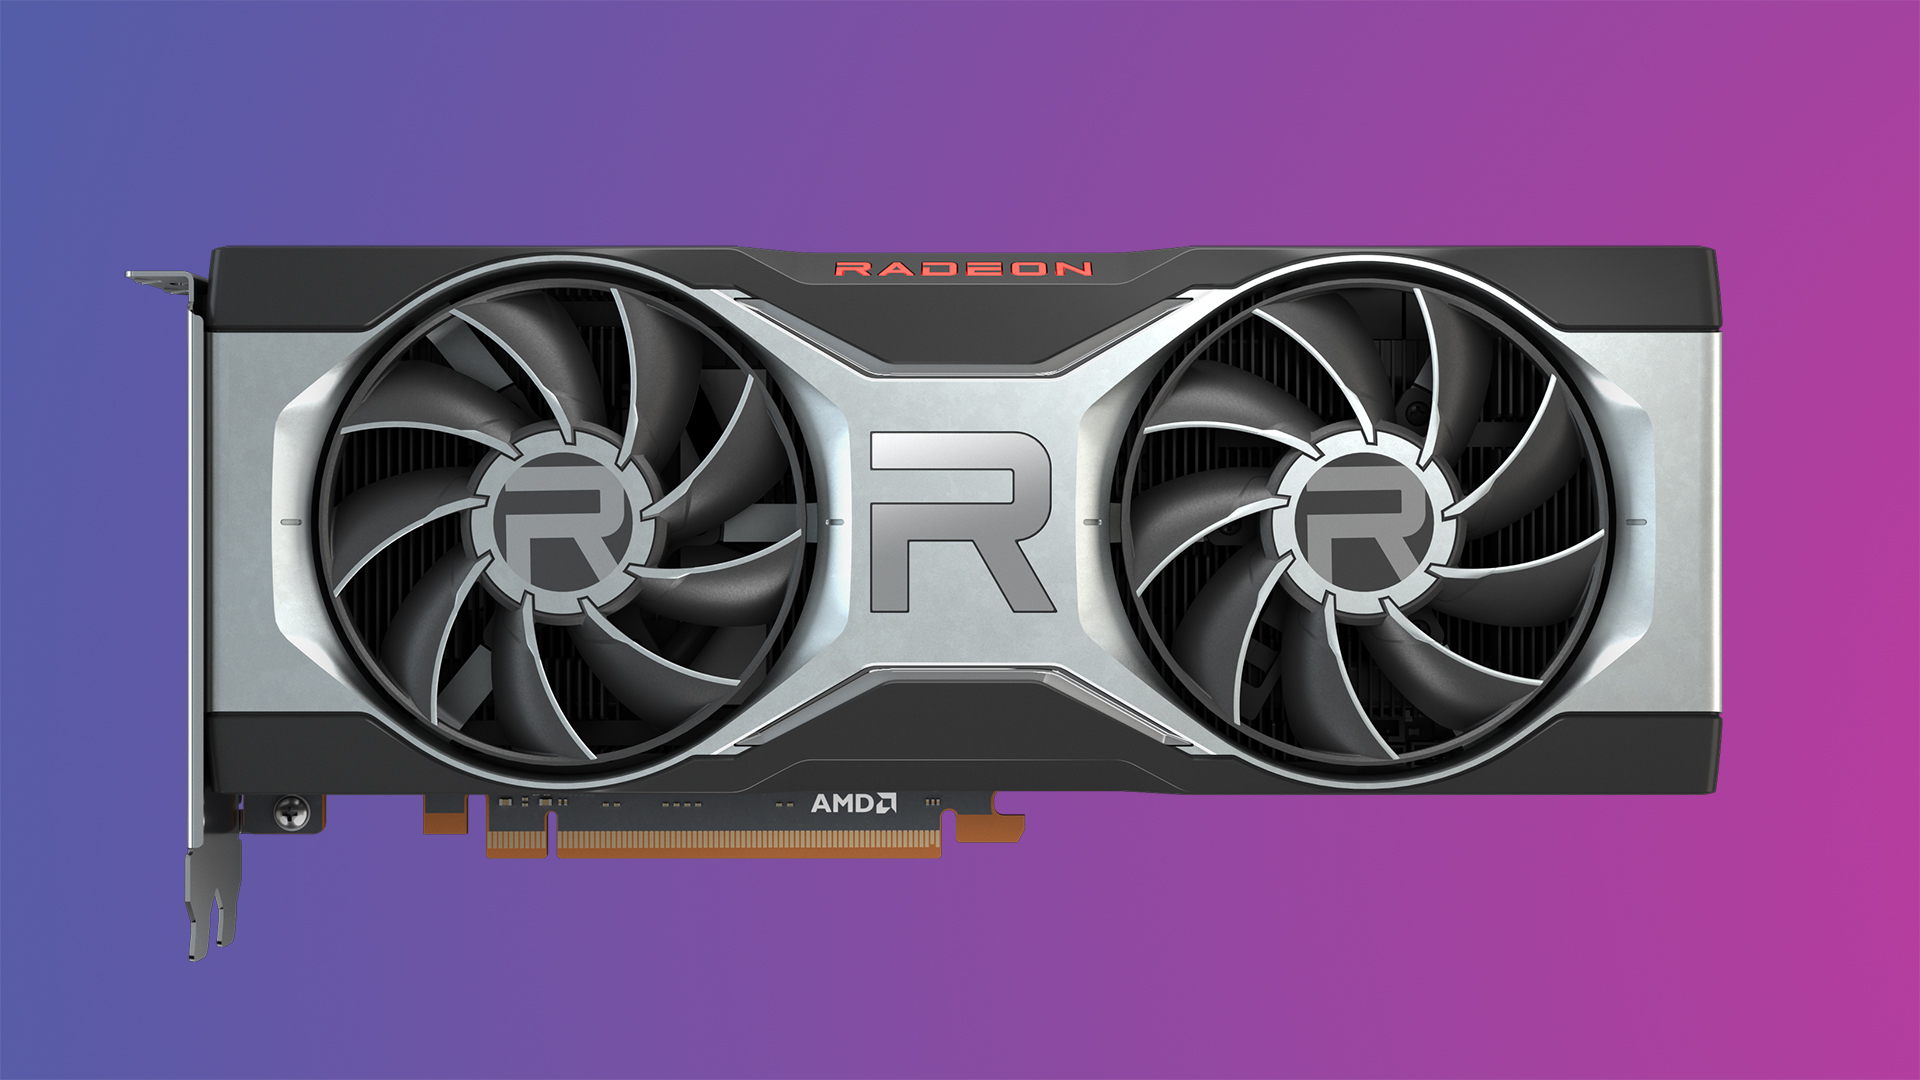 Where to buy an AMD Radeon RX 6700 XT graphics card - live updates